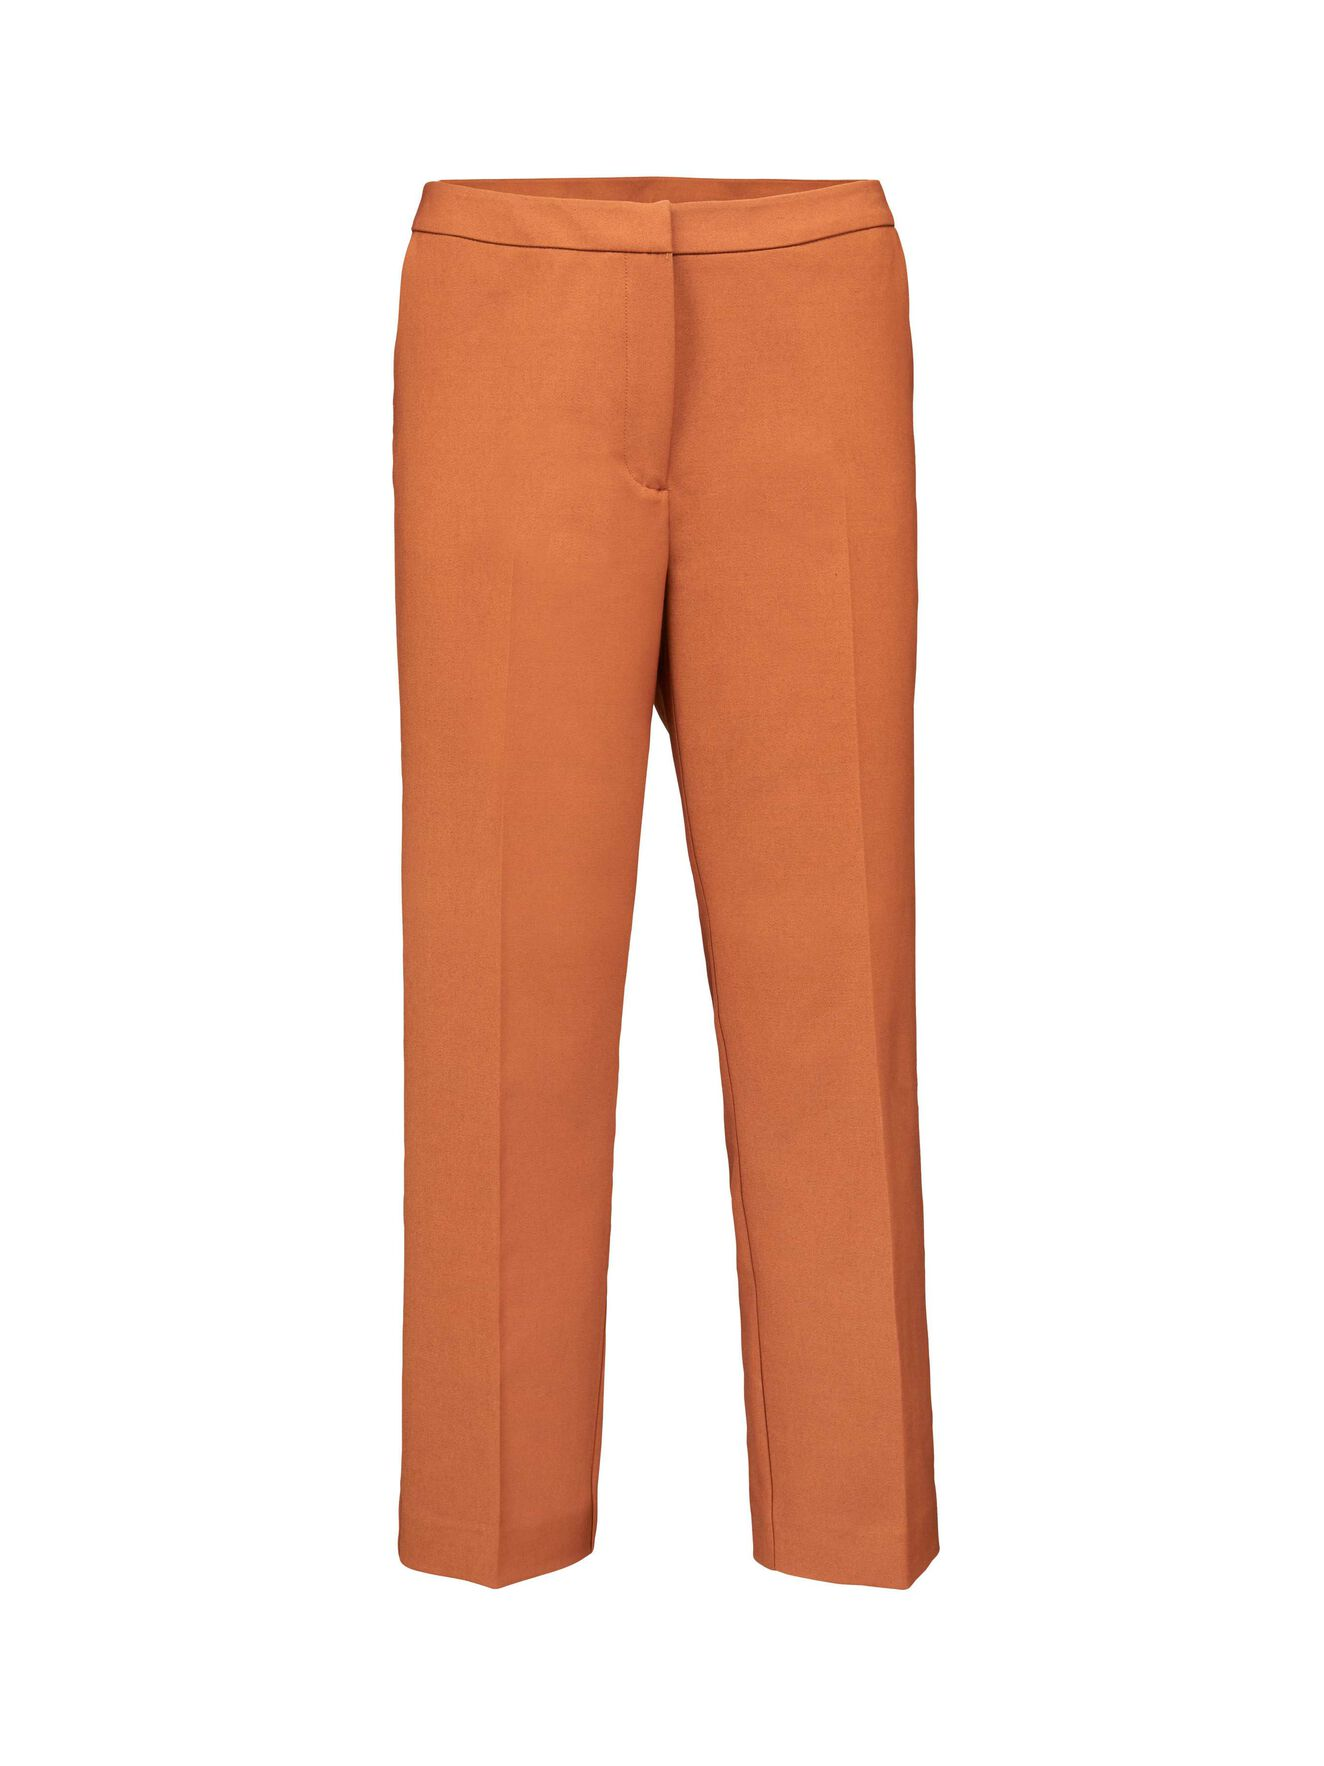 Mirz trousers in Leather Brown from Tiger of Sweden